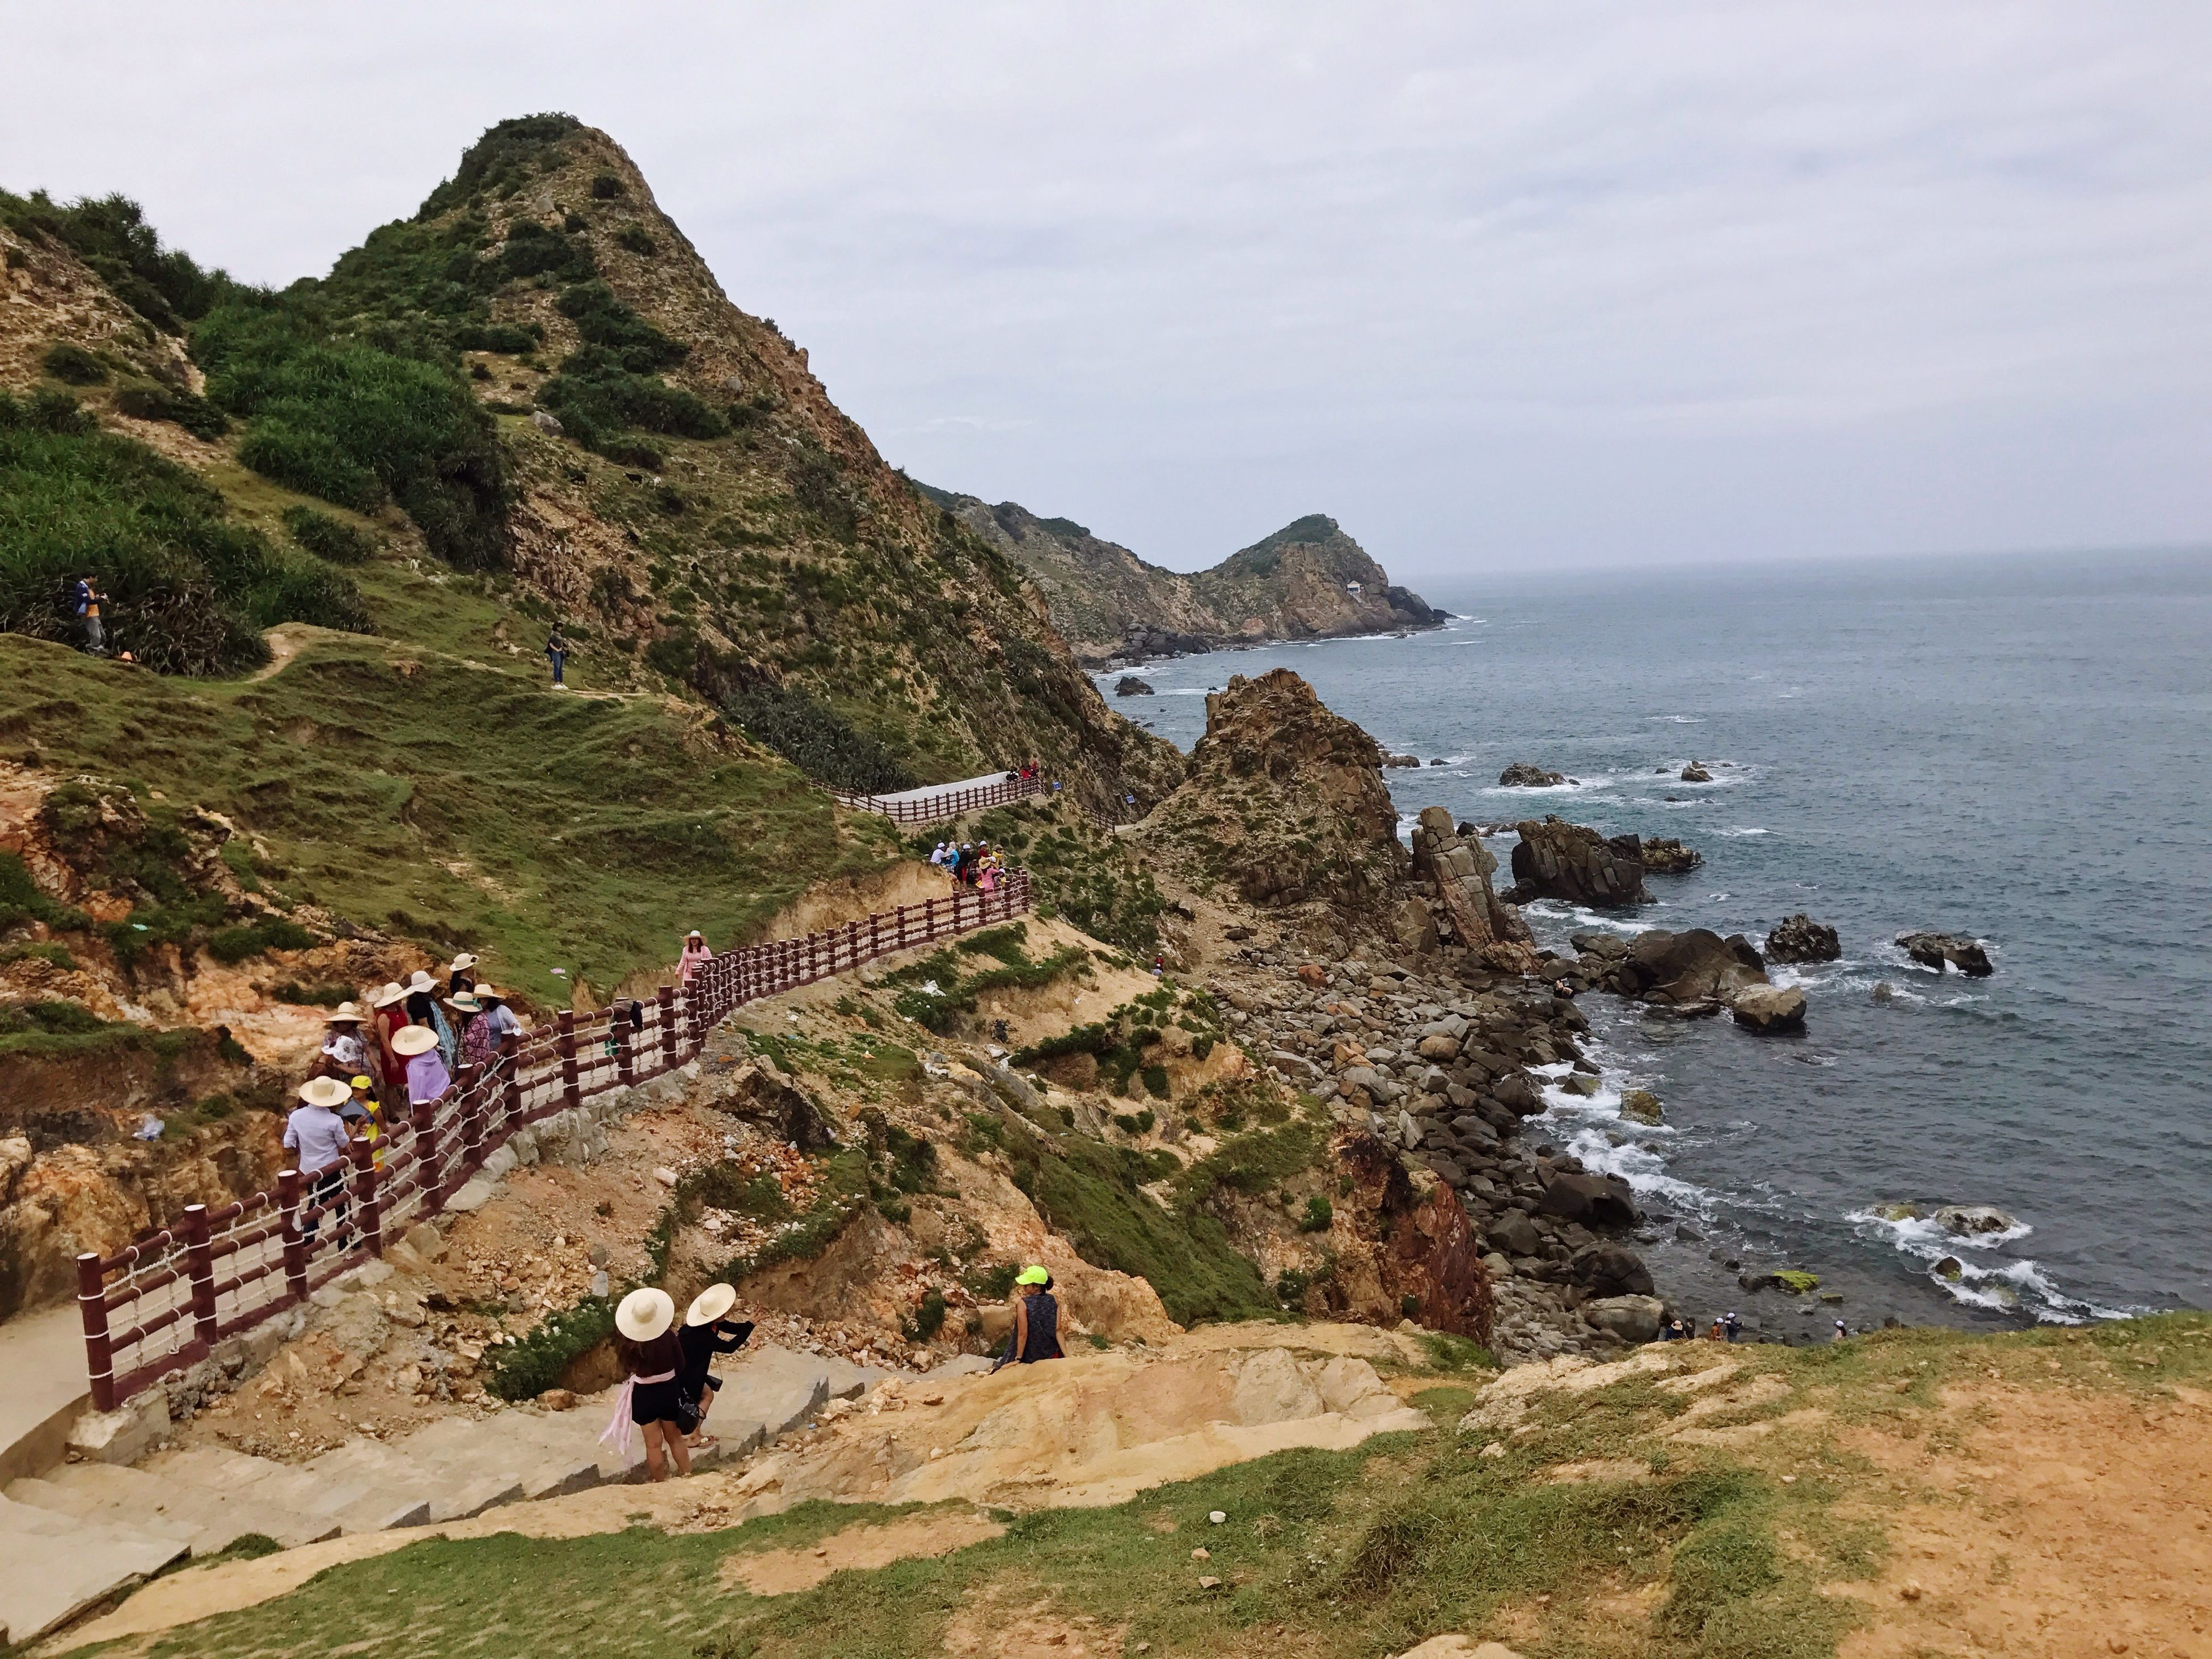 sea, nature, scenics, water, beauty in nature, mountain, sky, tranquil scene, tranquility, cliff, outdoors, real people, day, men, horizon over water, beach, large group of people, mammal, people